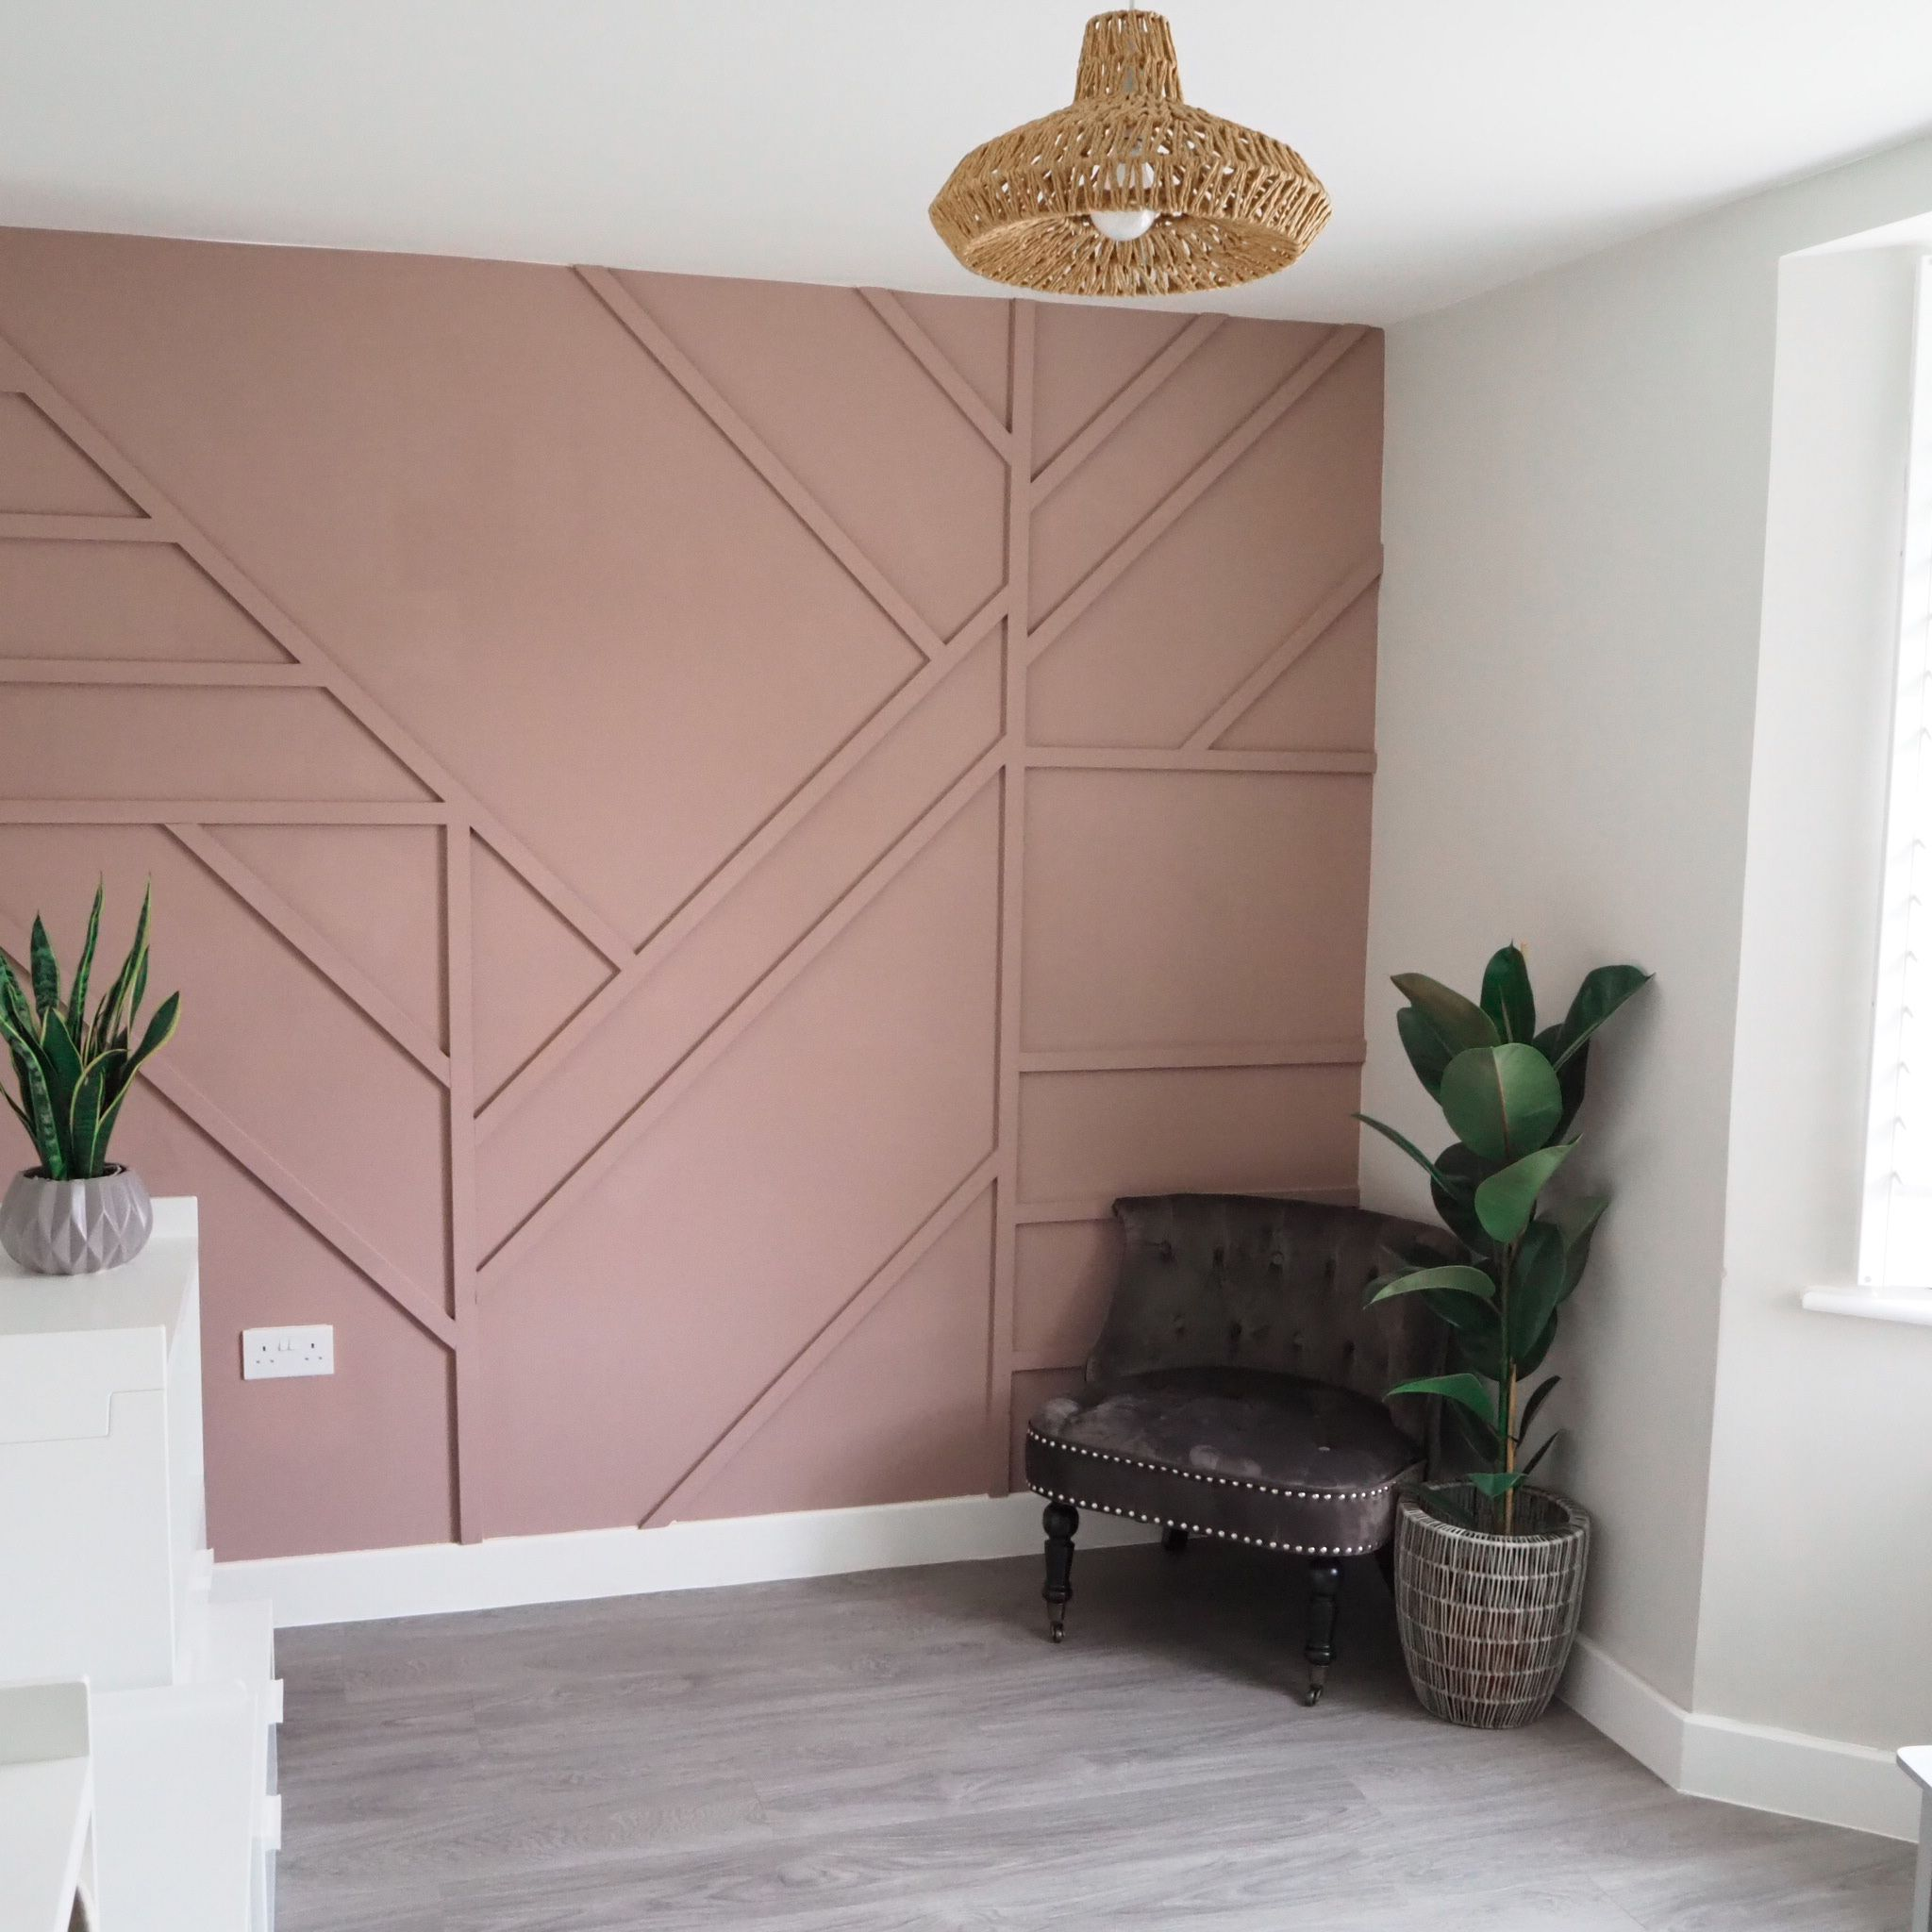 Diy Geometric Wall Panelling In Sulking Room Pink Accent Wall Bedroom Home Decor House Interior